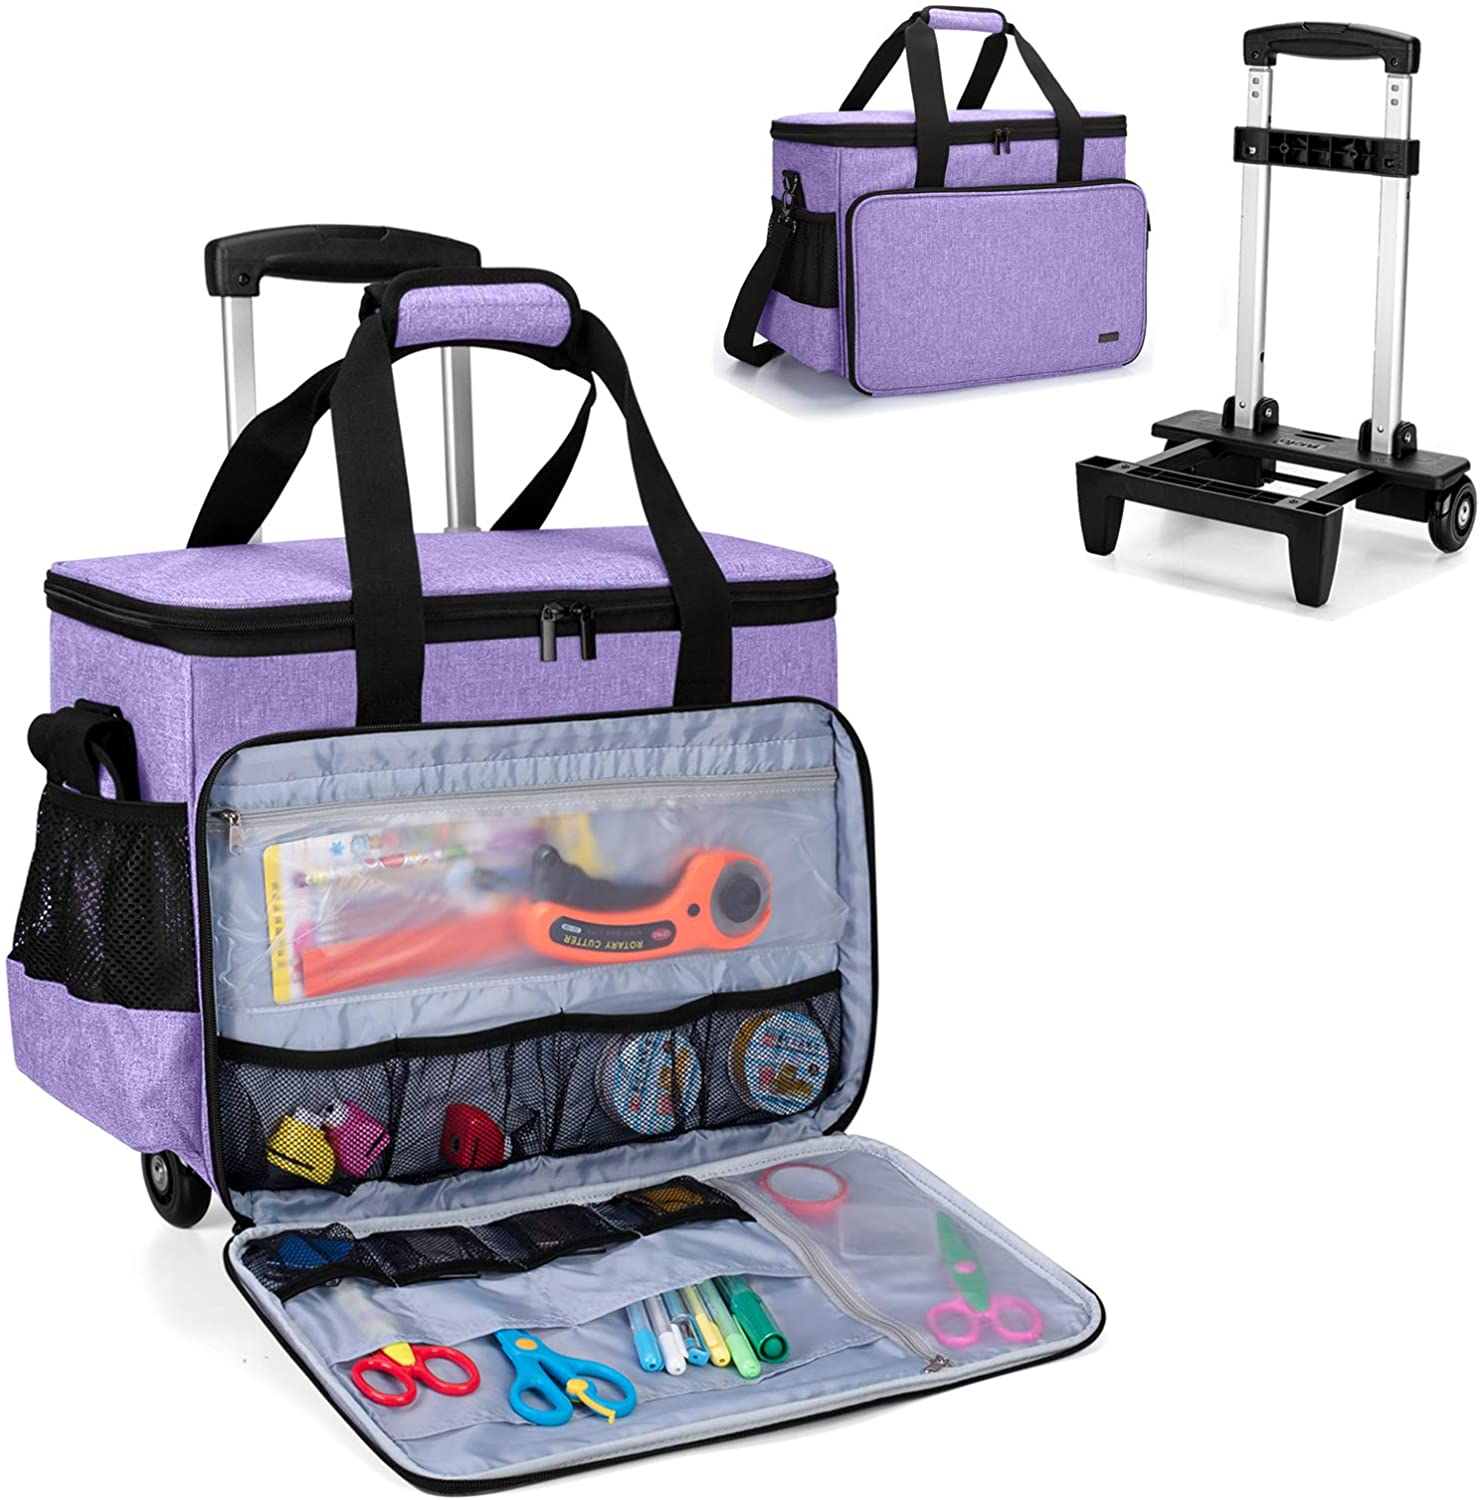 Purple Yarwo Rolling Scrapbook Tote Bag with Wheels Detachable Trolley Craft Carrying Case with Removable Bottom Wooden Board for Scrapbooking and Crafting